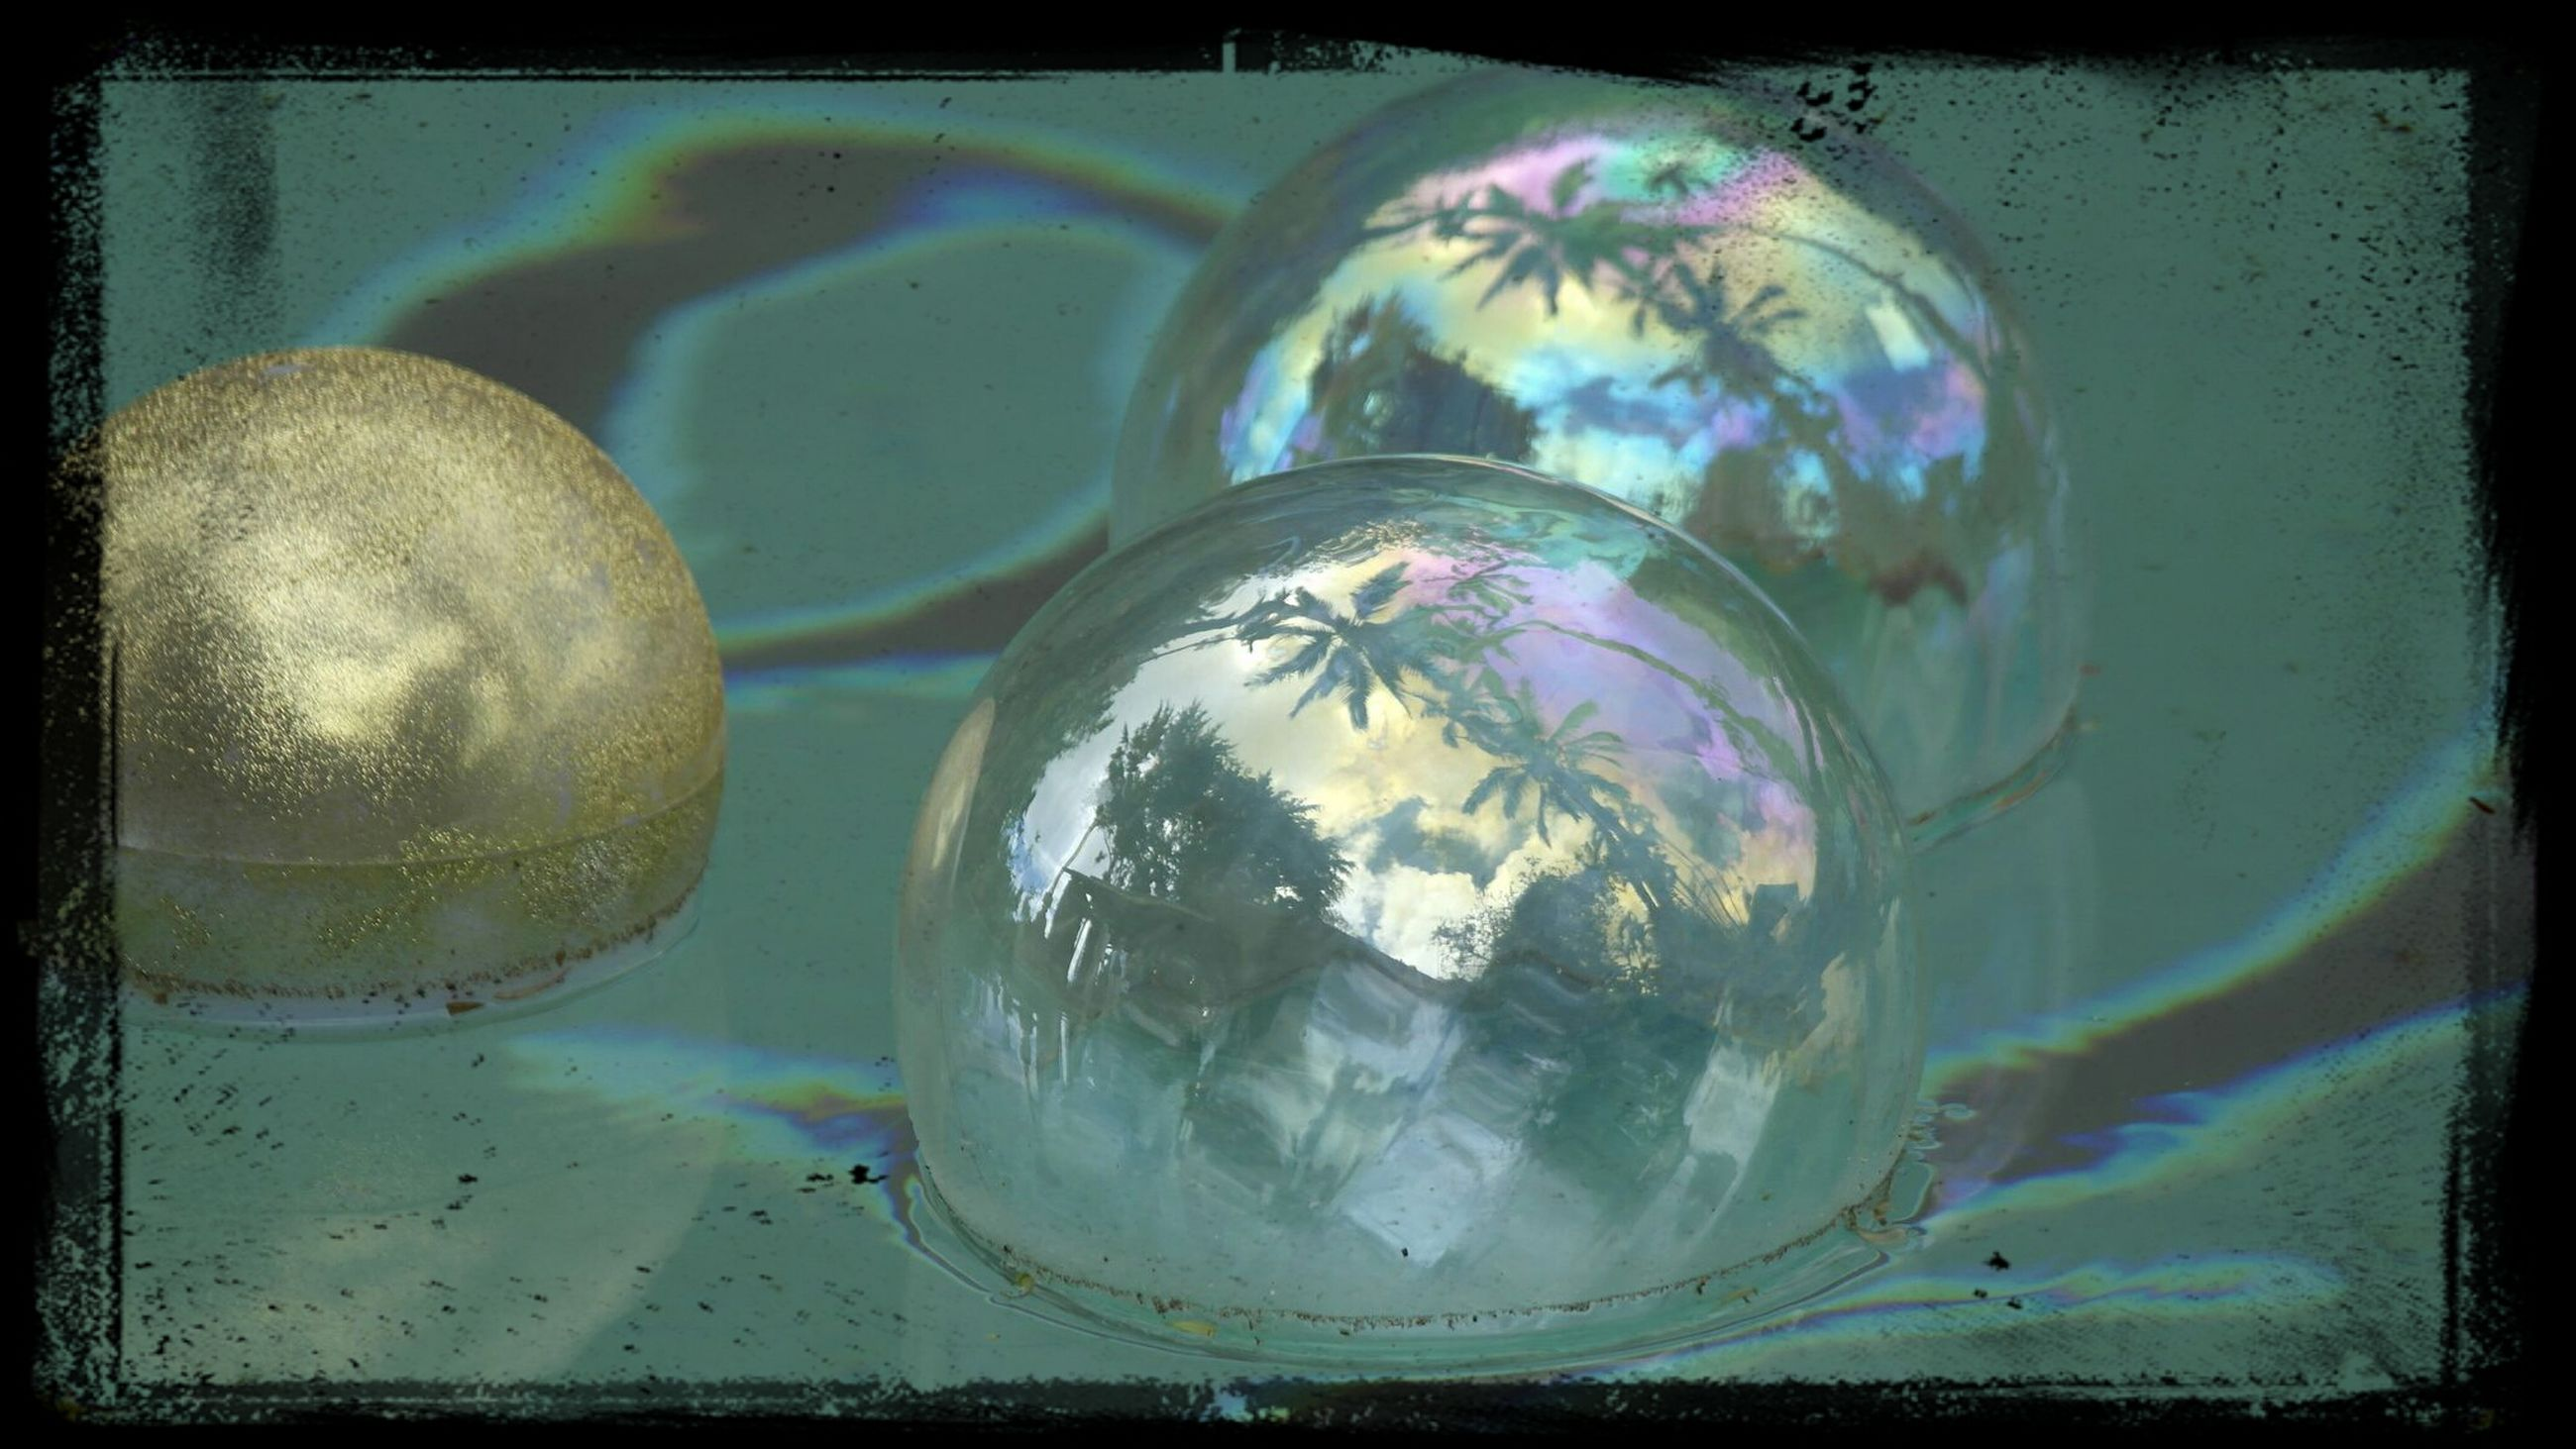 transfer print, auto post production filter, indoors, glass - material, transparent, water, reflection, close-up, glass, no people, blue, bubble, frame, day, high angle view, drinking glass, digital composite, circle, sphere